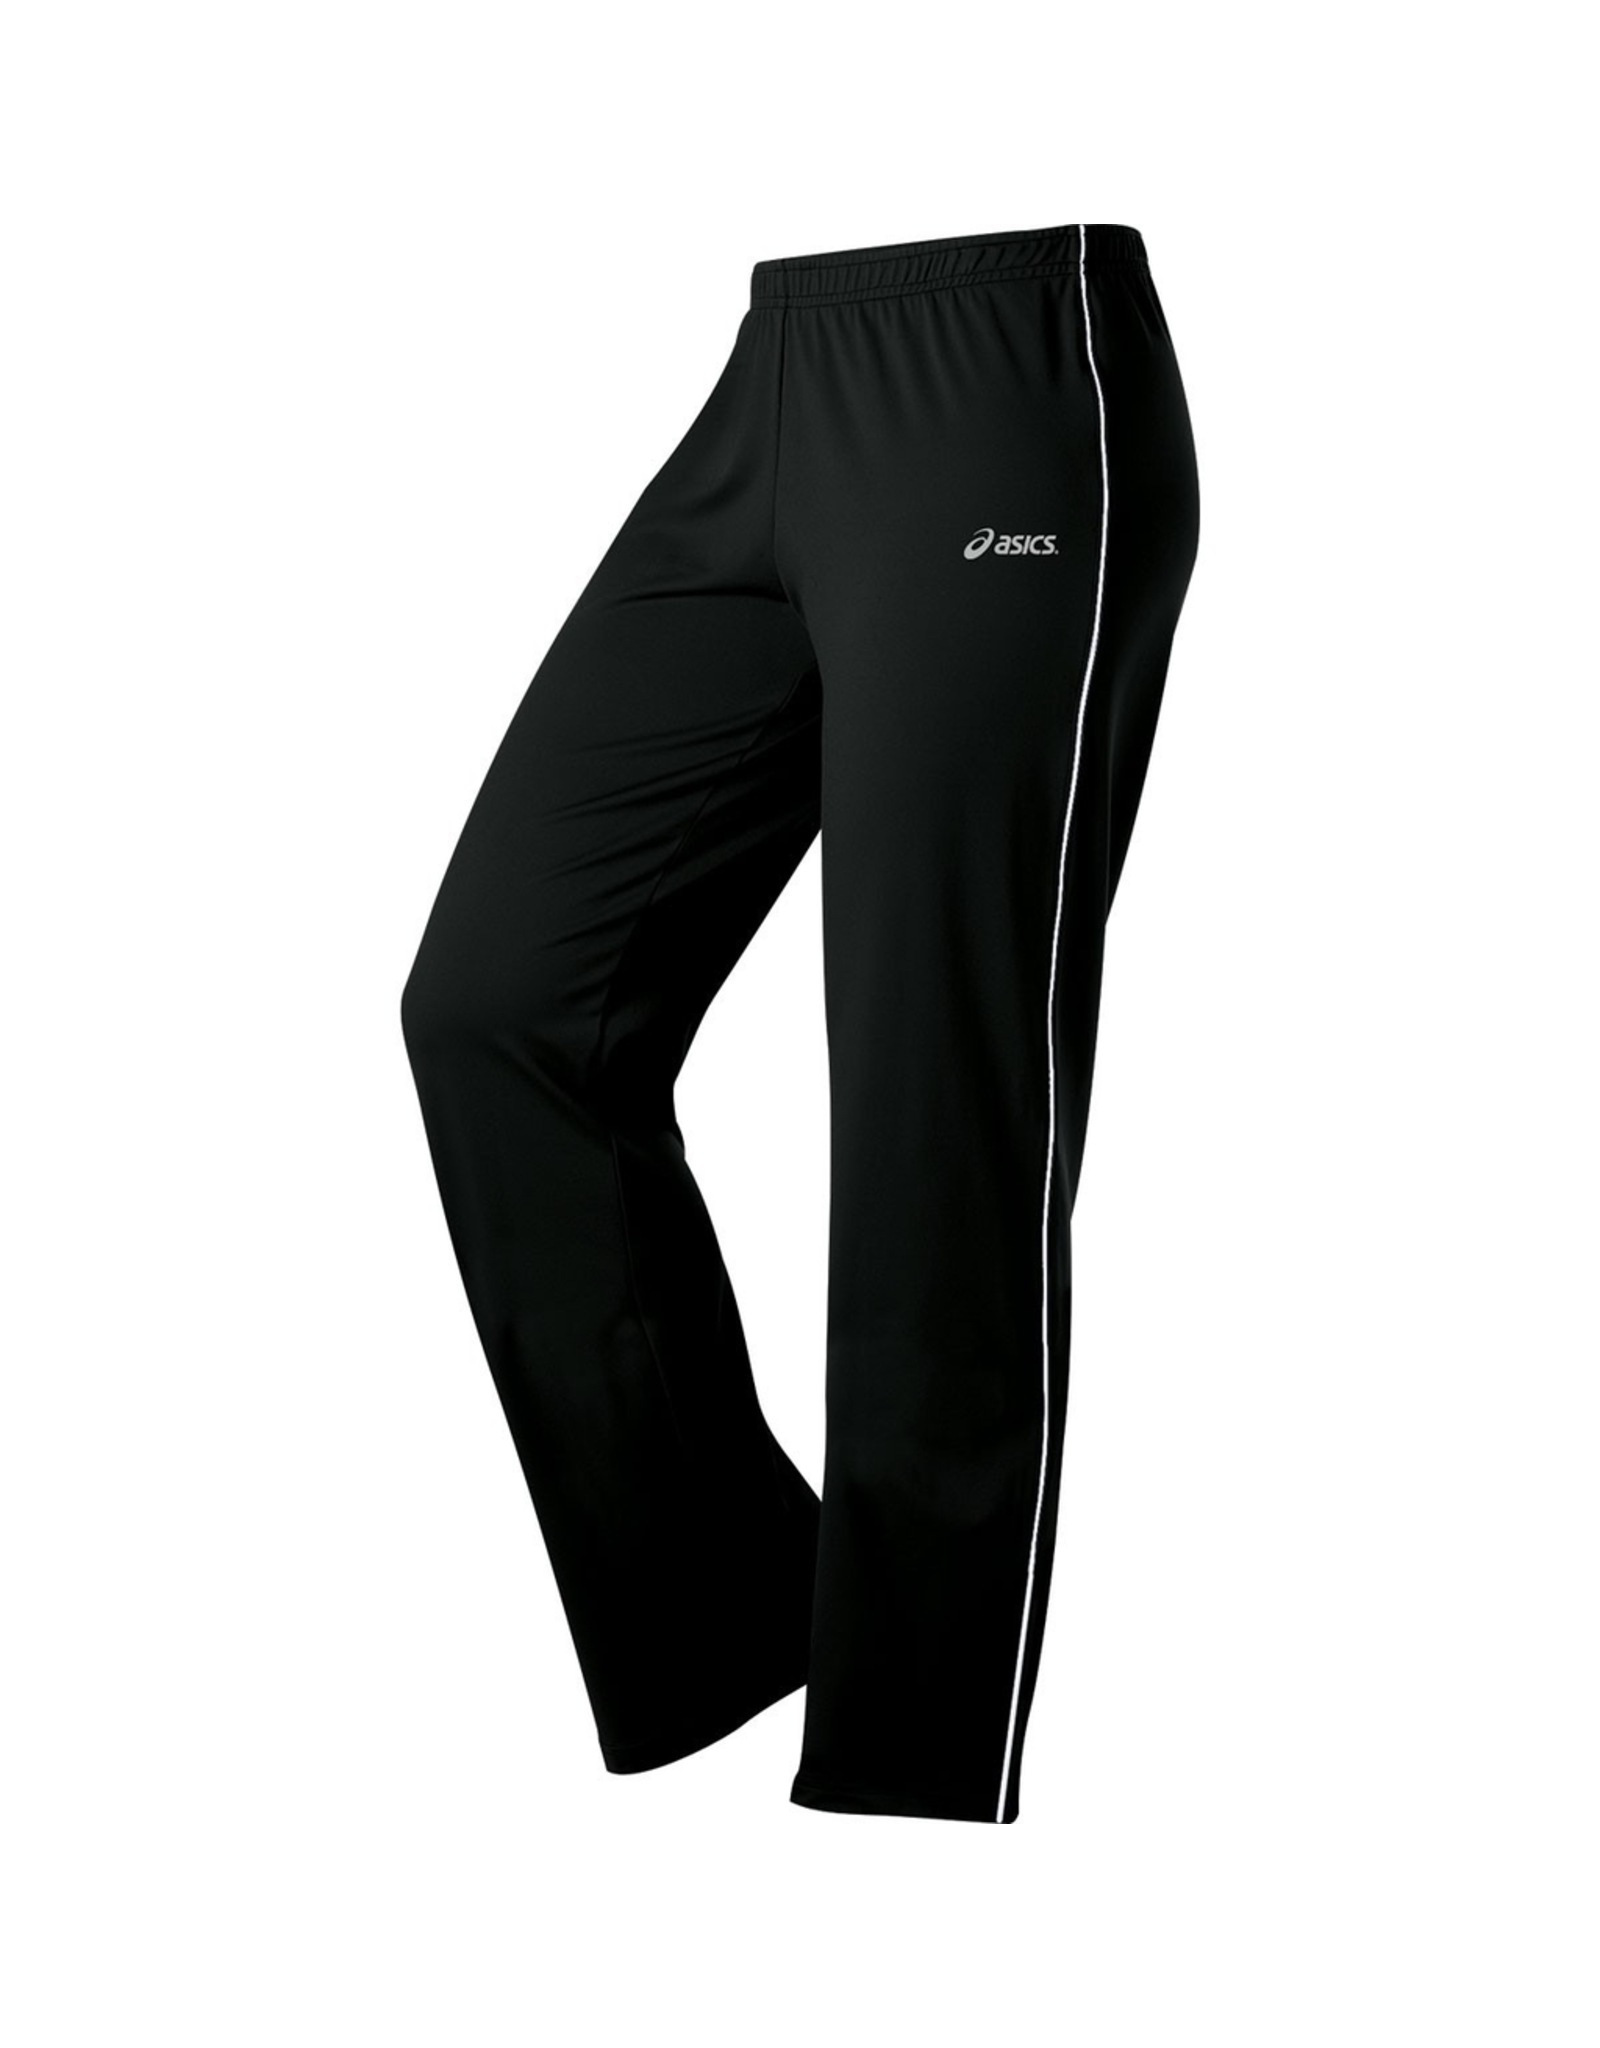 ASICS Aliso Pants Tall - Discontinued